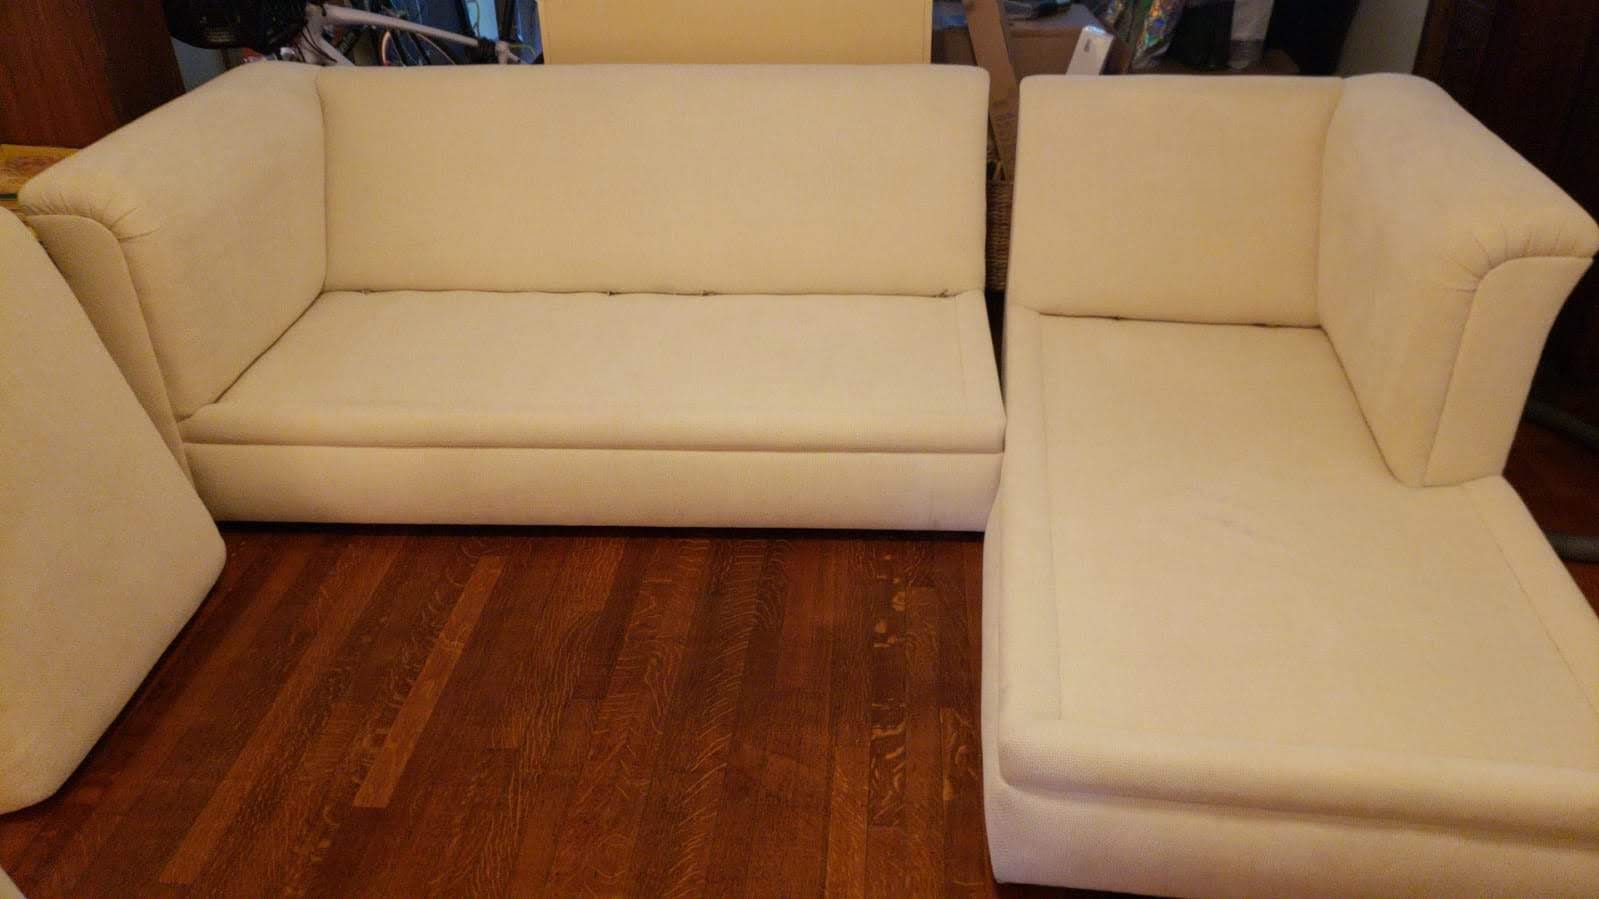 Sofa Cleaning Miami 7869716998 Upholstery Cleaning Miami